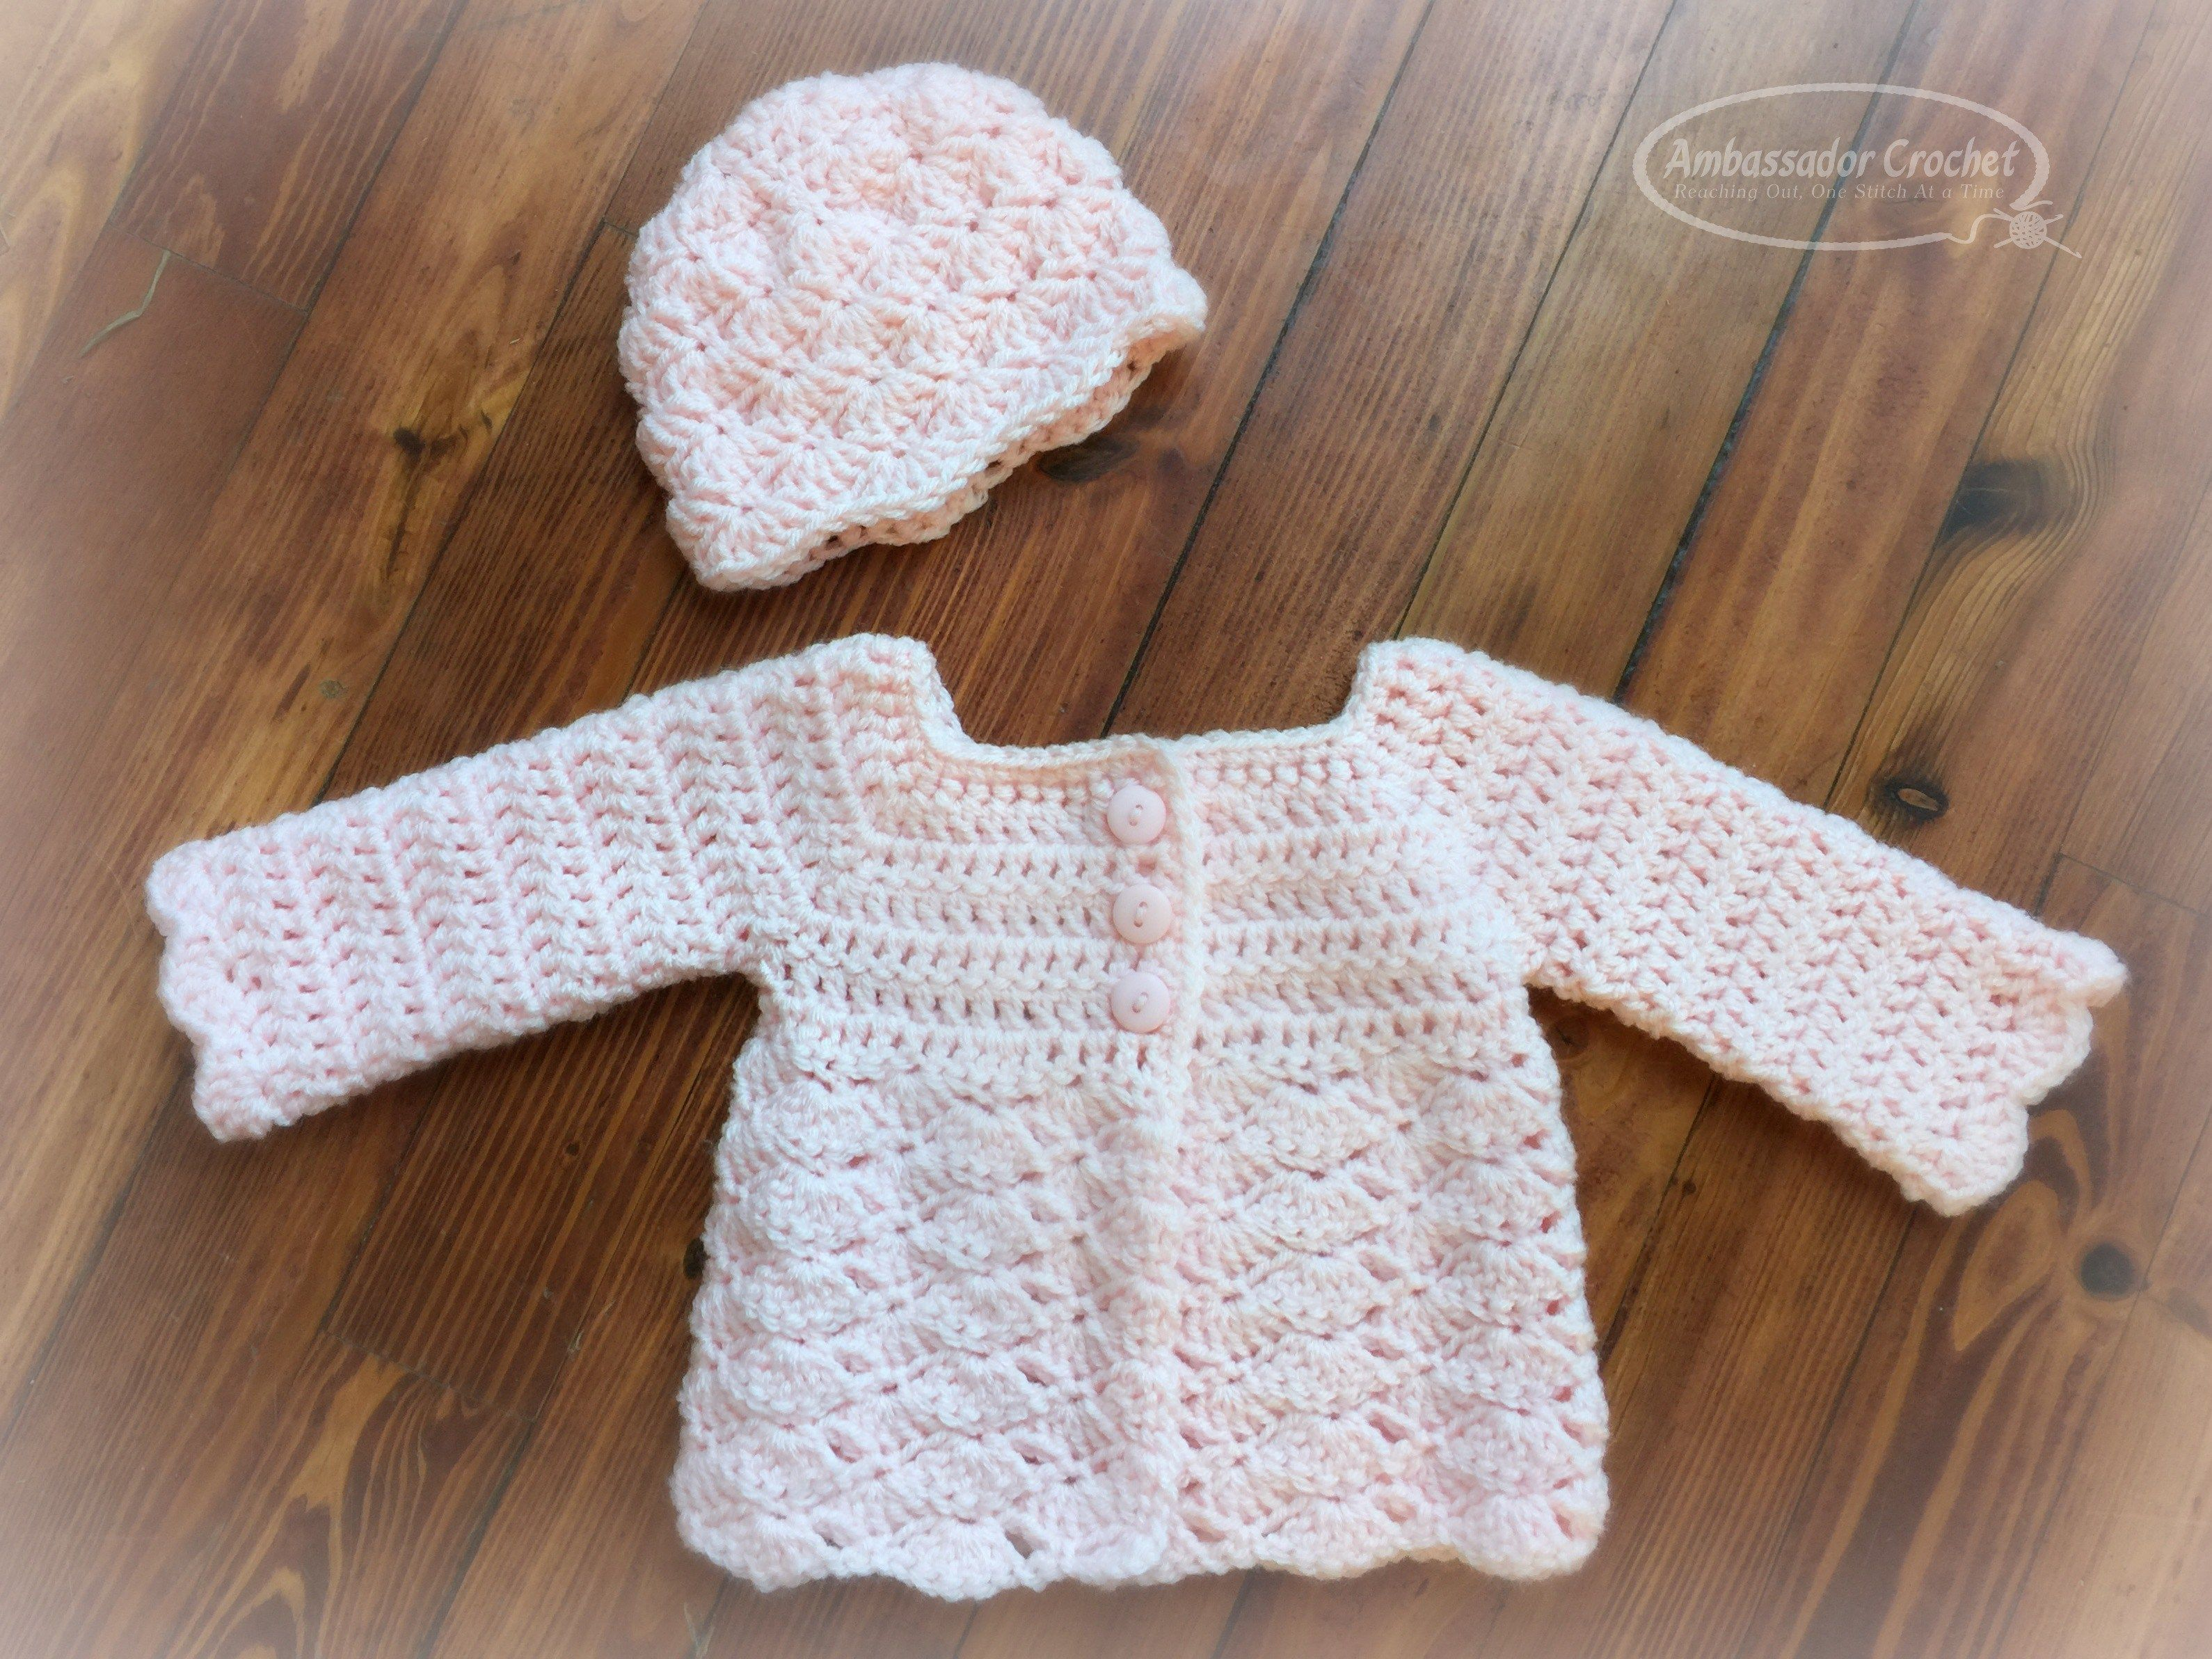 Sweet Shells Baby Sweater Crochet Pattern - This 0-3 month baby ...